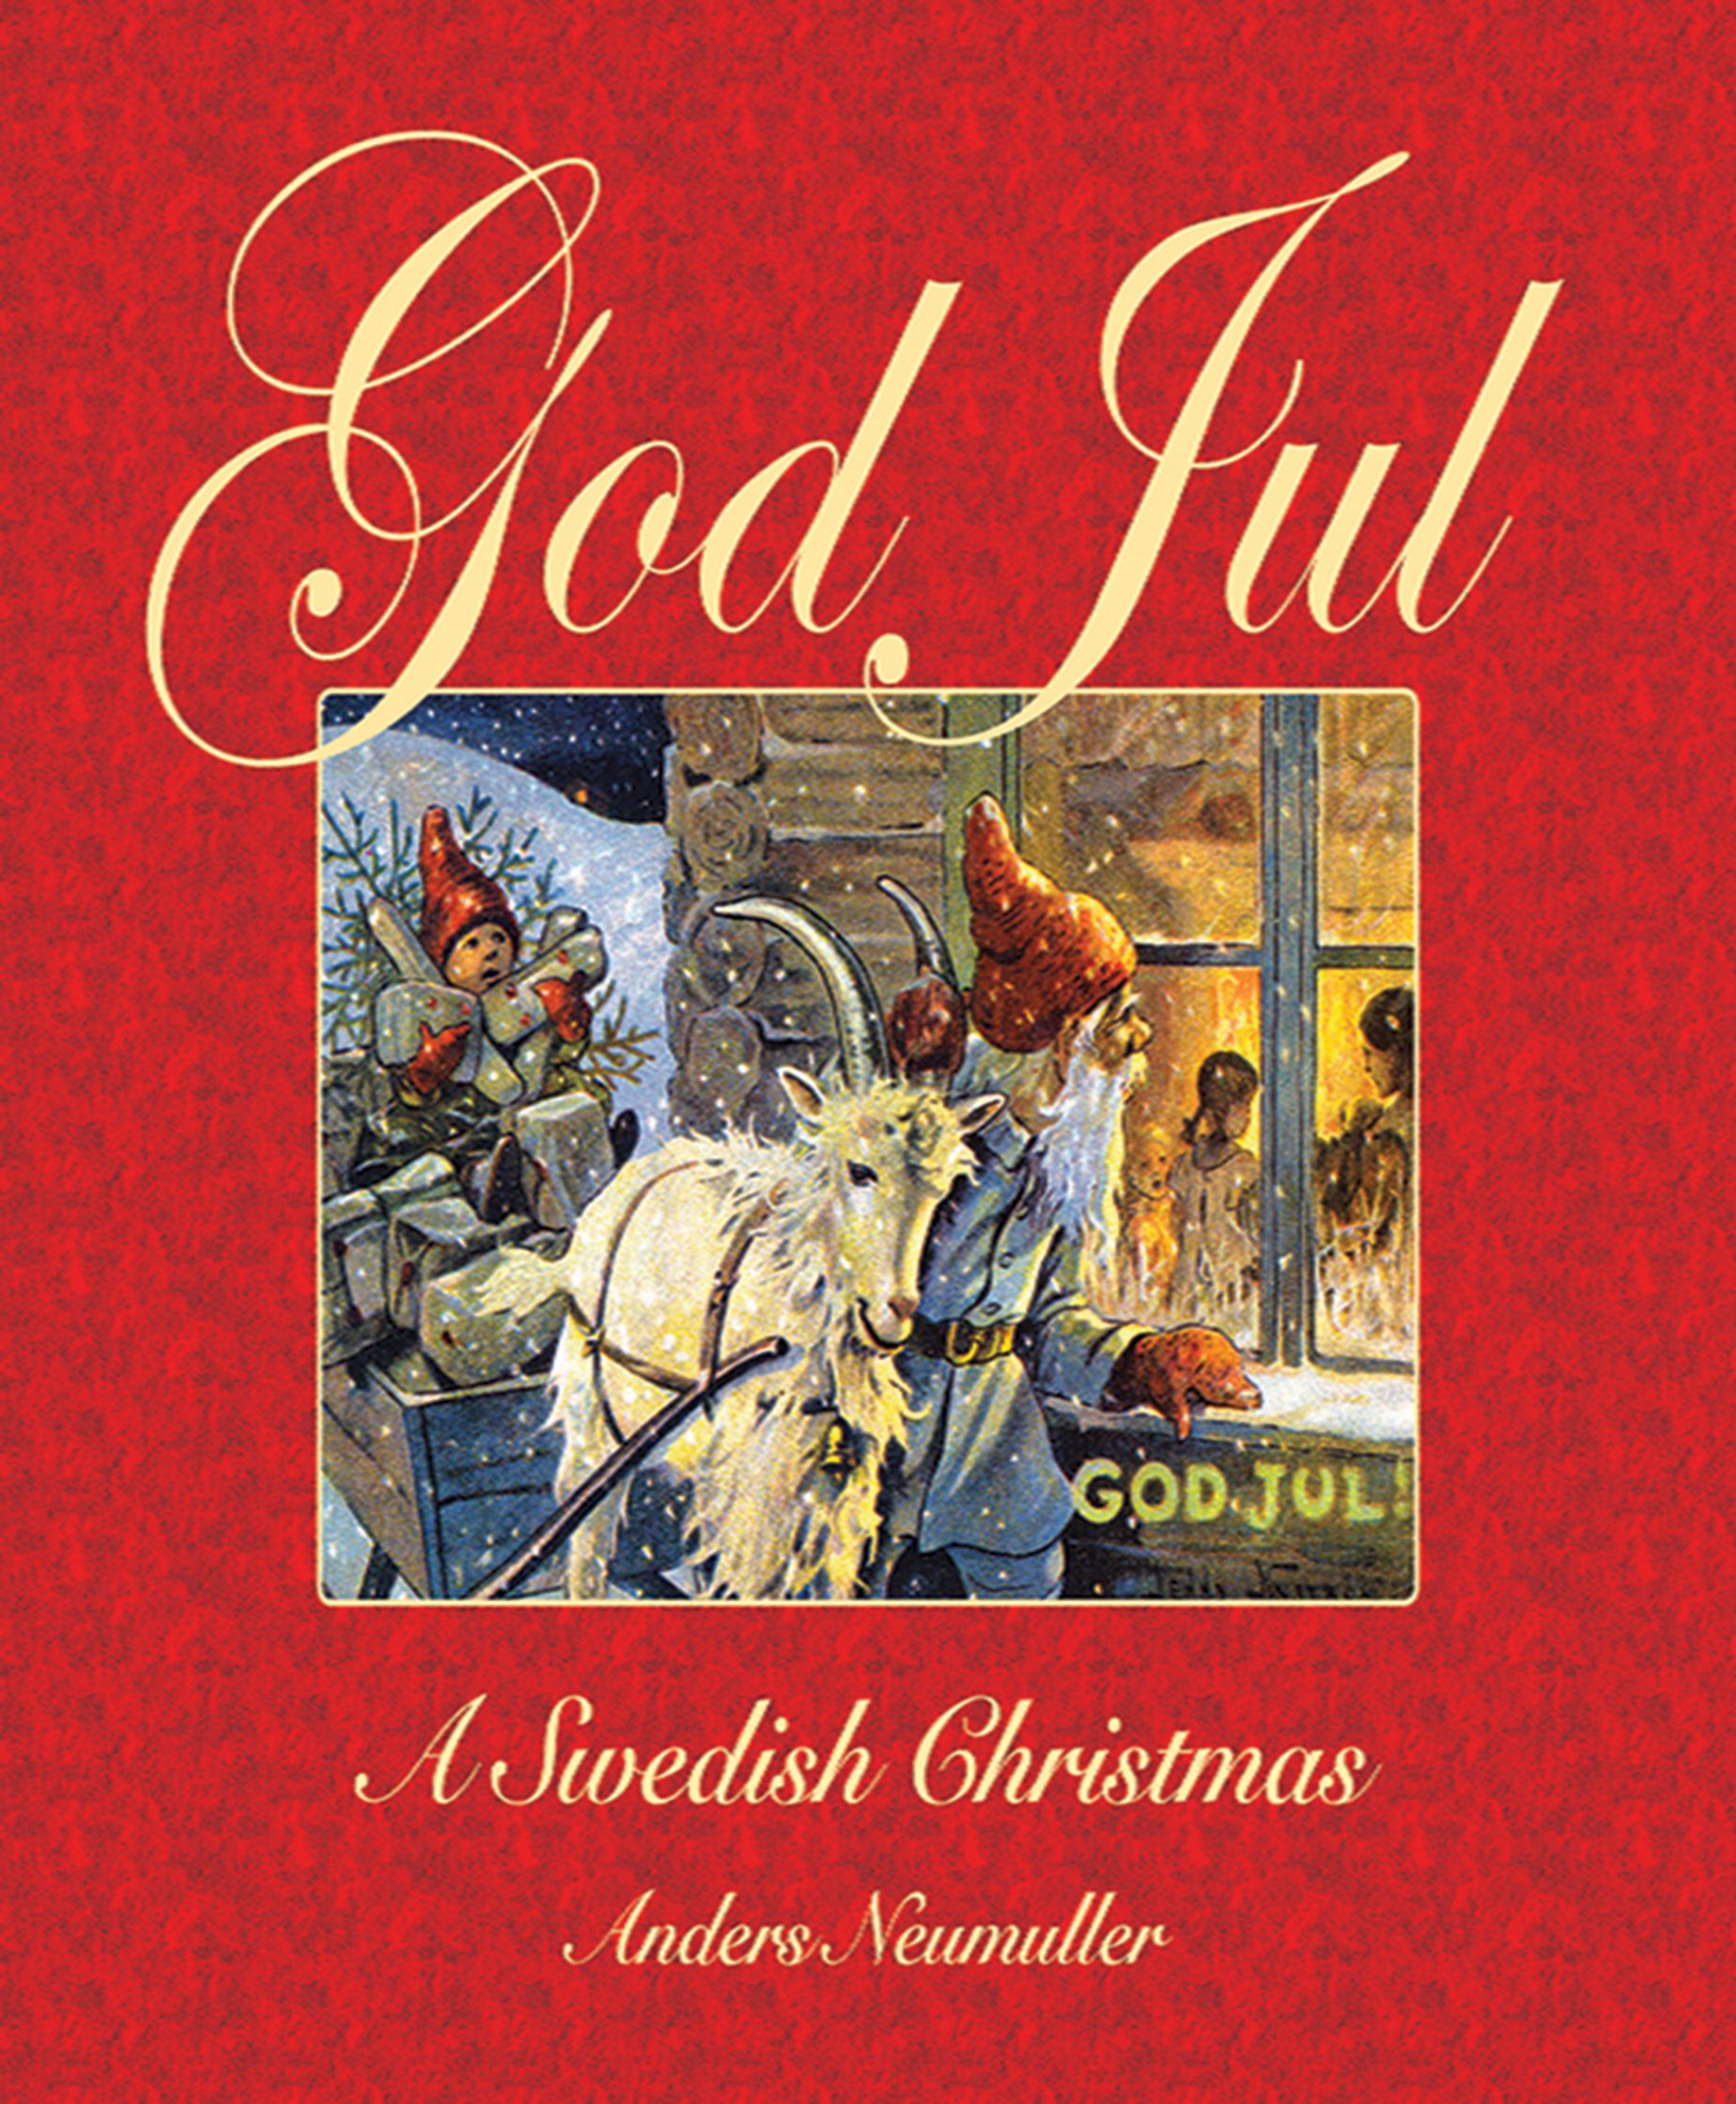 god jul a swedish christmas anders neumuller 9781602397552 amazoncom books - Swedish Christmas Songs